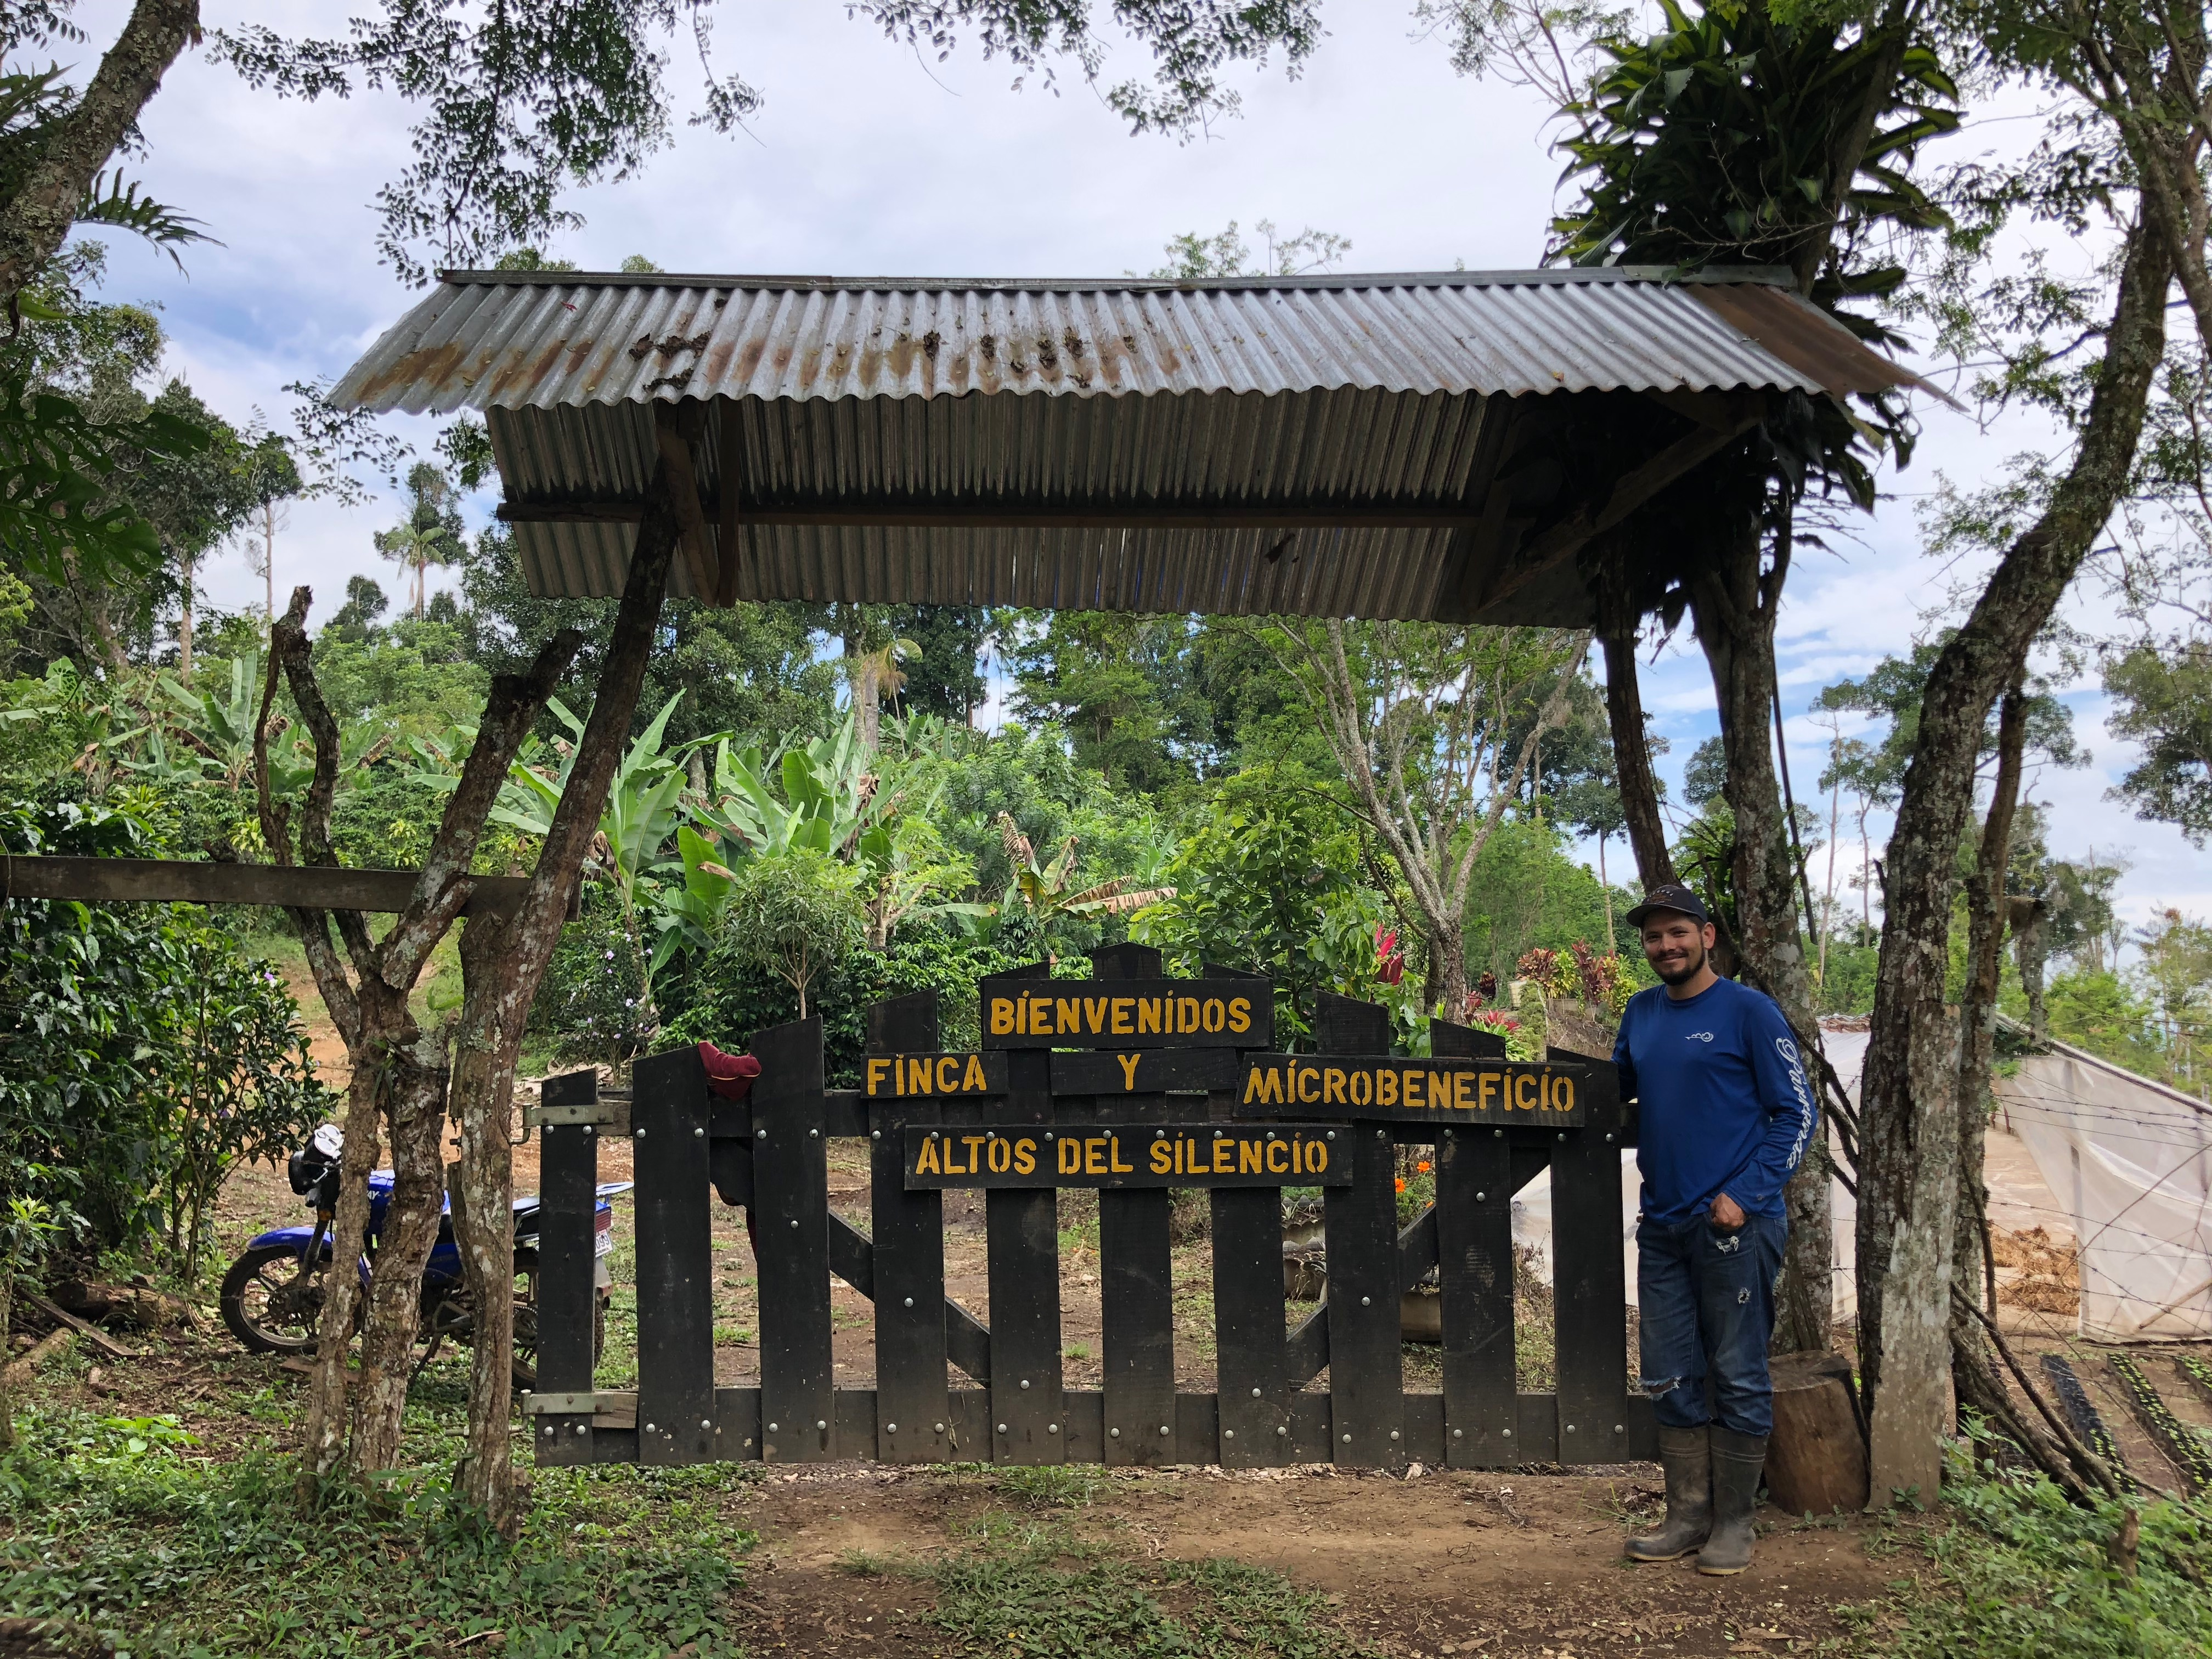 <p>Don Lainekel Zamora Gómez at the entrance to his coffee farm. Coffee is an important part of the economy in Coto Brus, Costa Rica. Photo by Stefanie Tye</p>